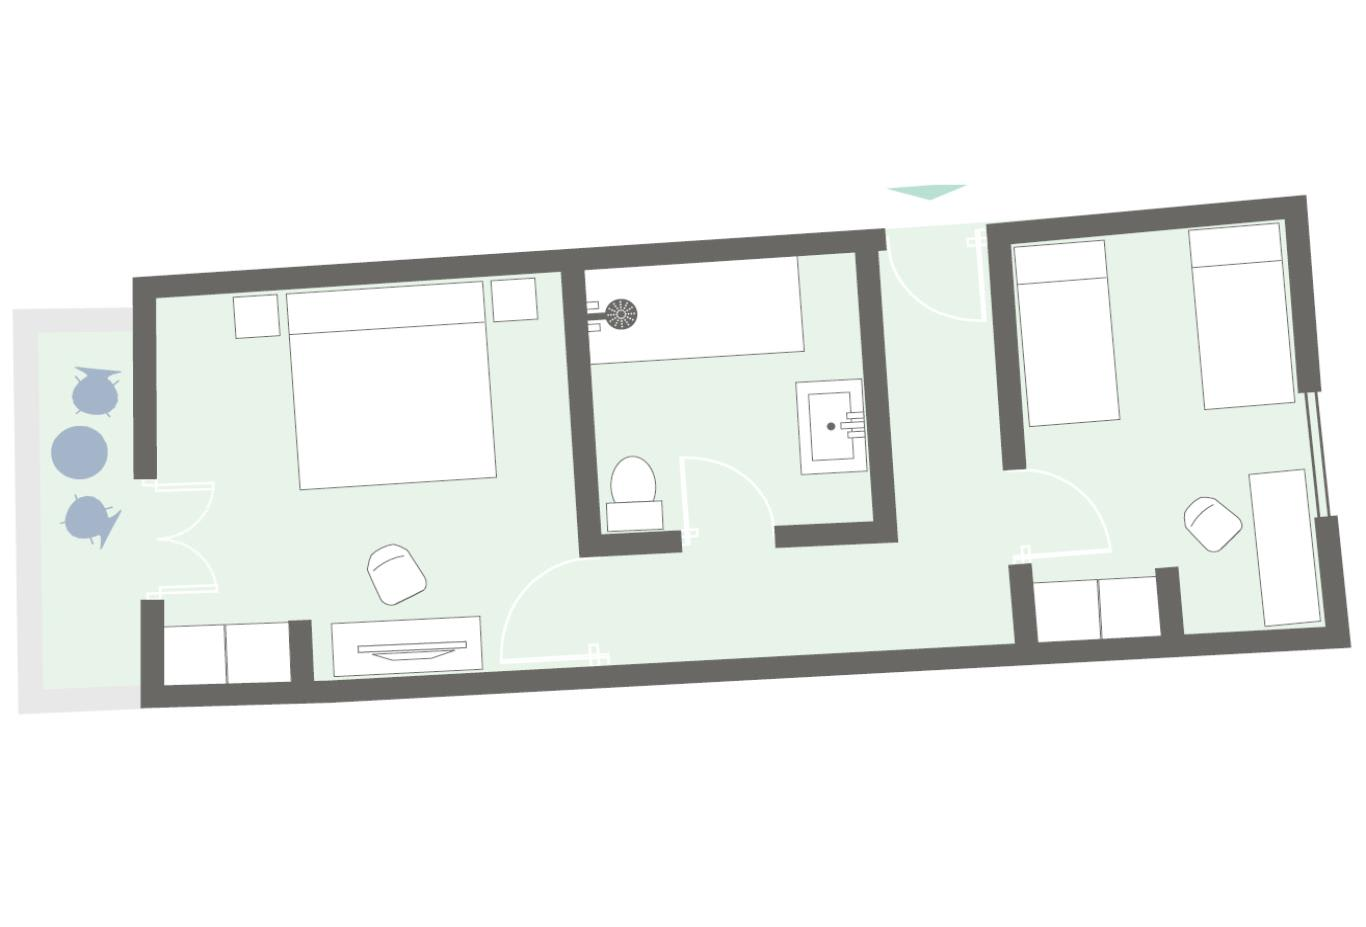 Family Suite floorplan example